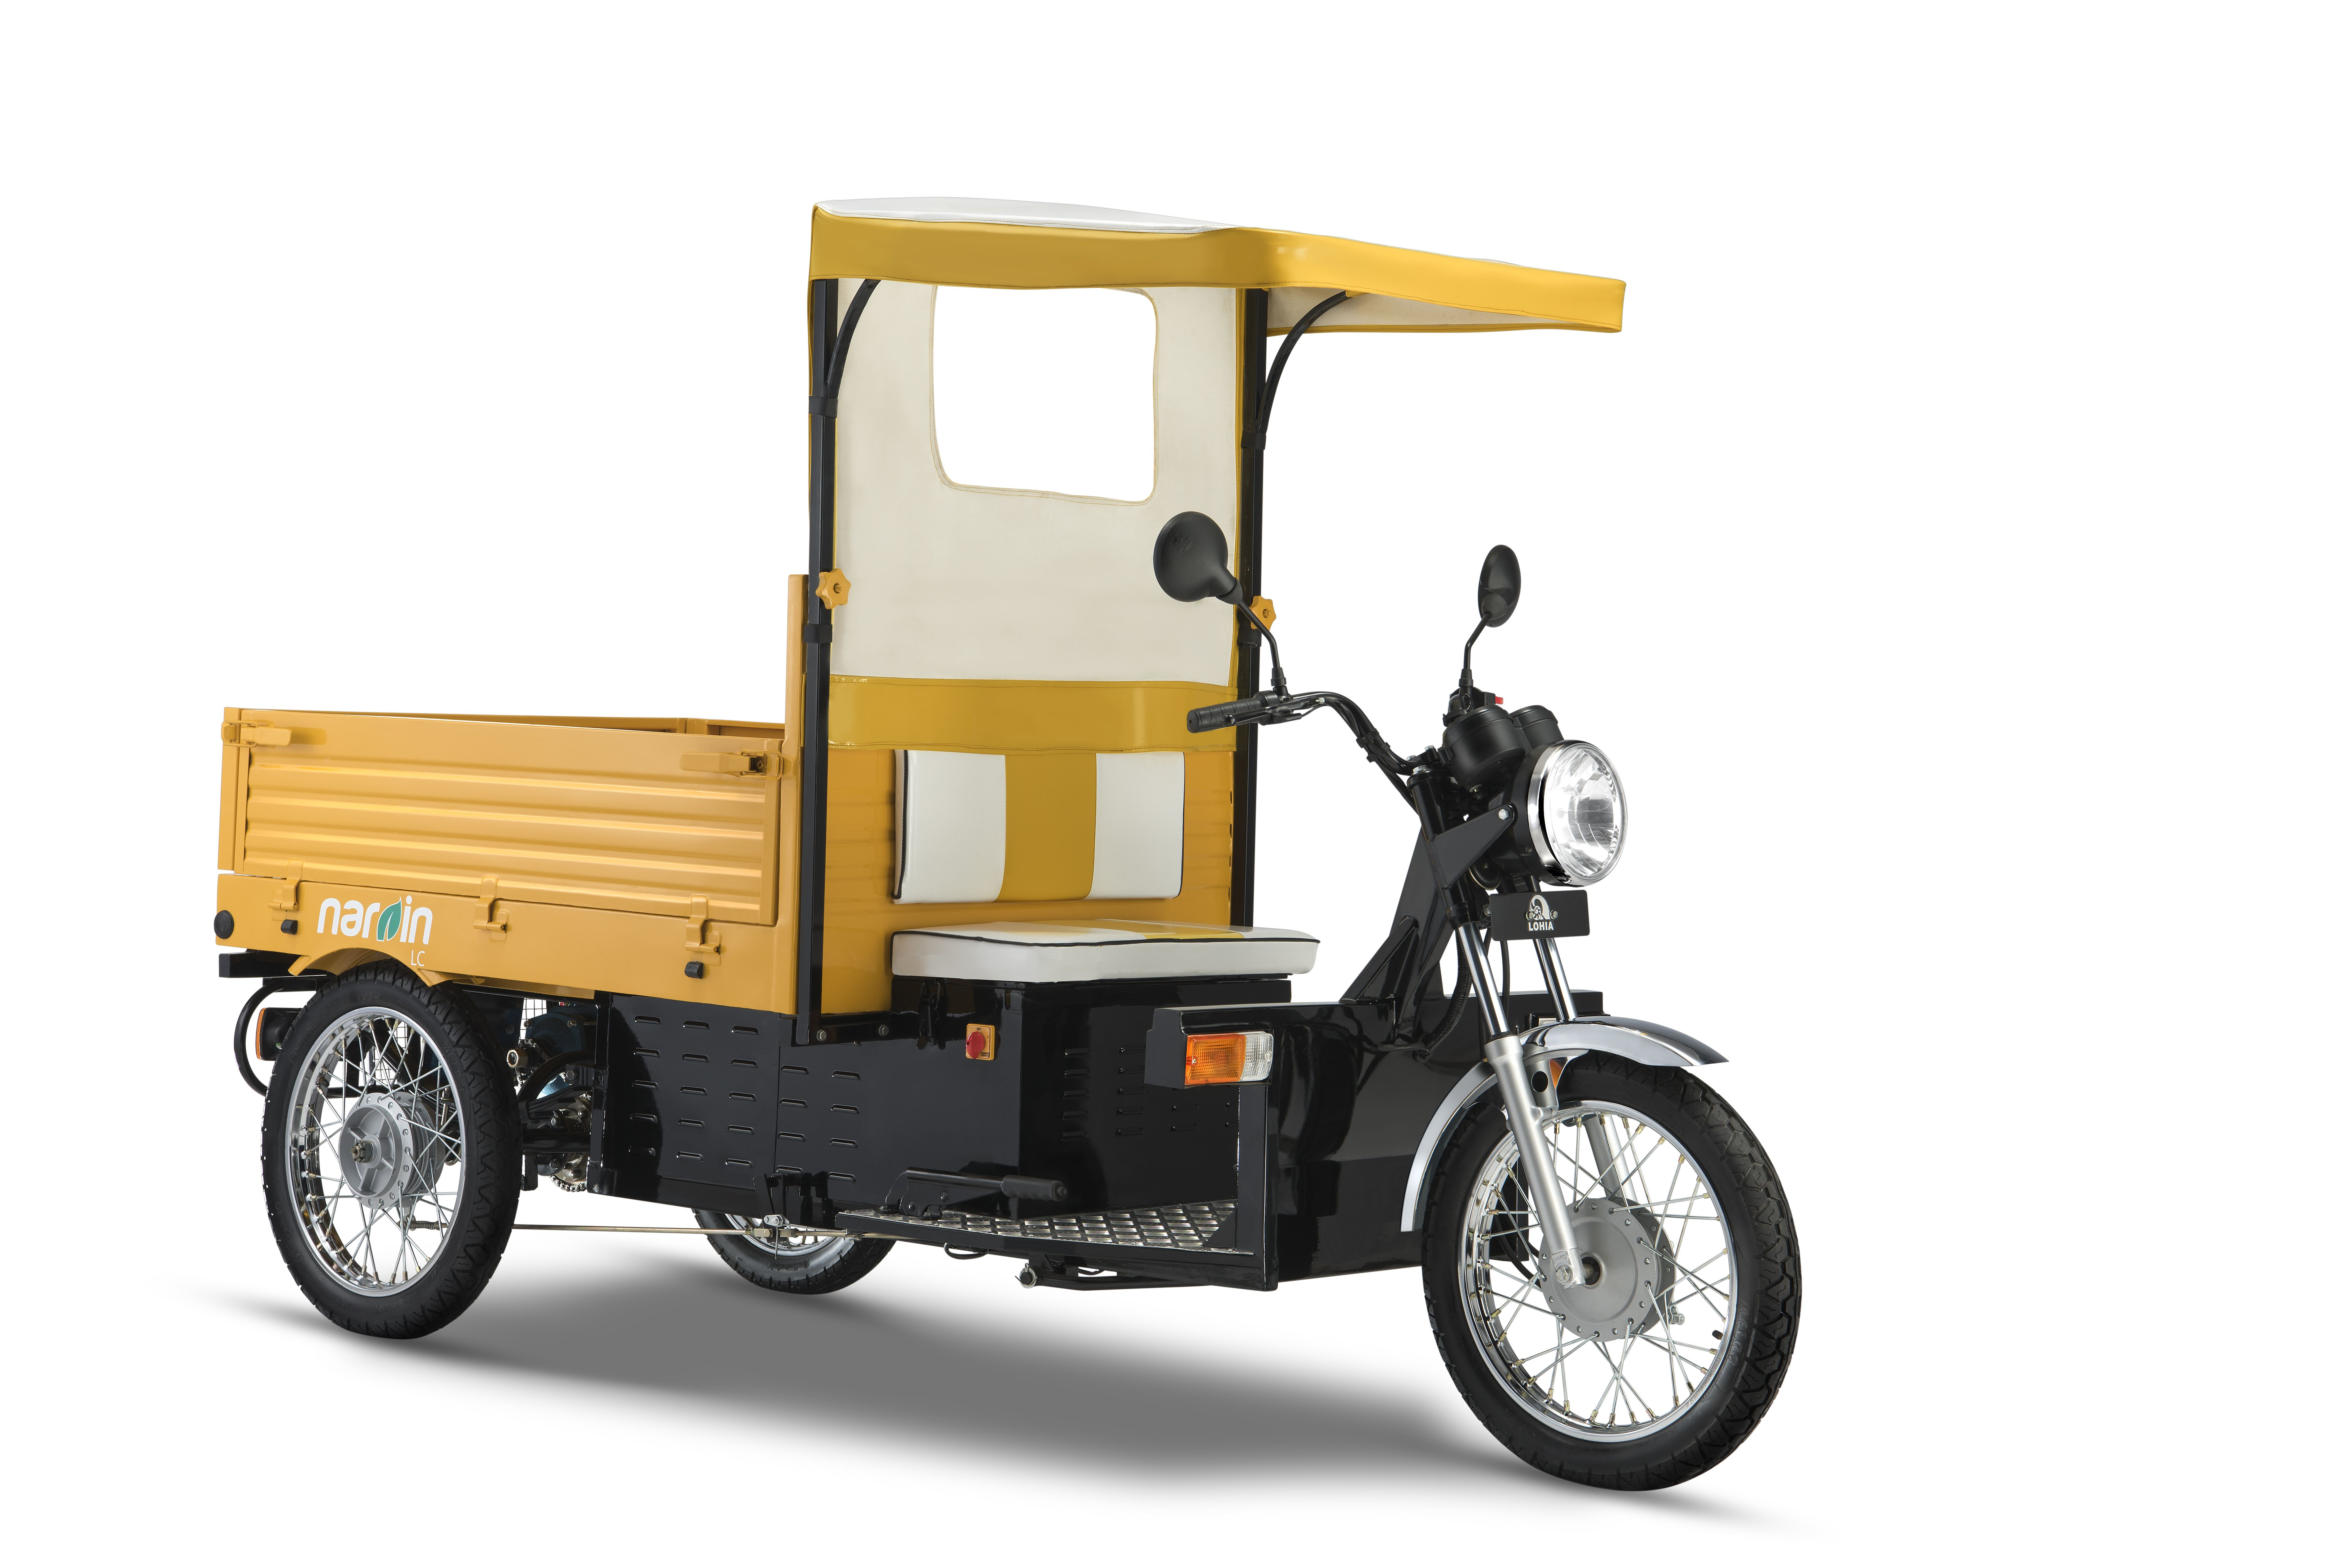 Electric Three Wheeler Lohia Auto Is One Of The Largest Two Solar Powered Led Street Light With Intensity Controldiy Kit At Automobiles Manufacturers In India Check Out Their Rickshaws